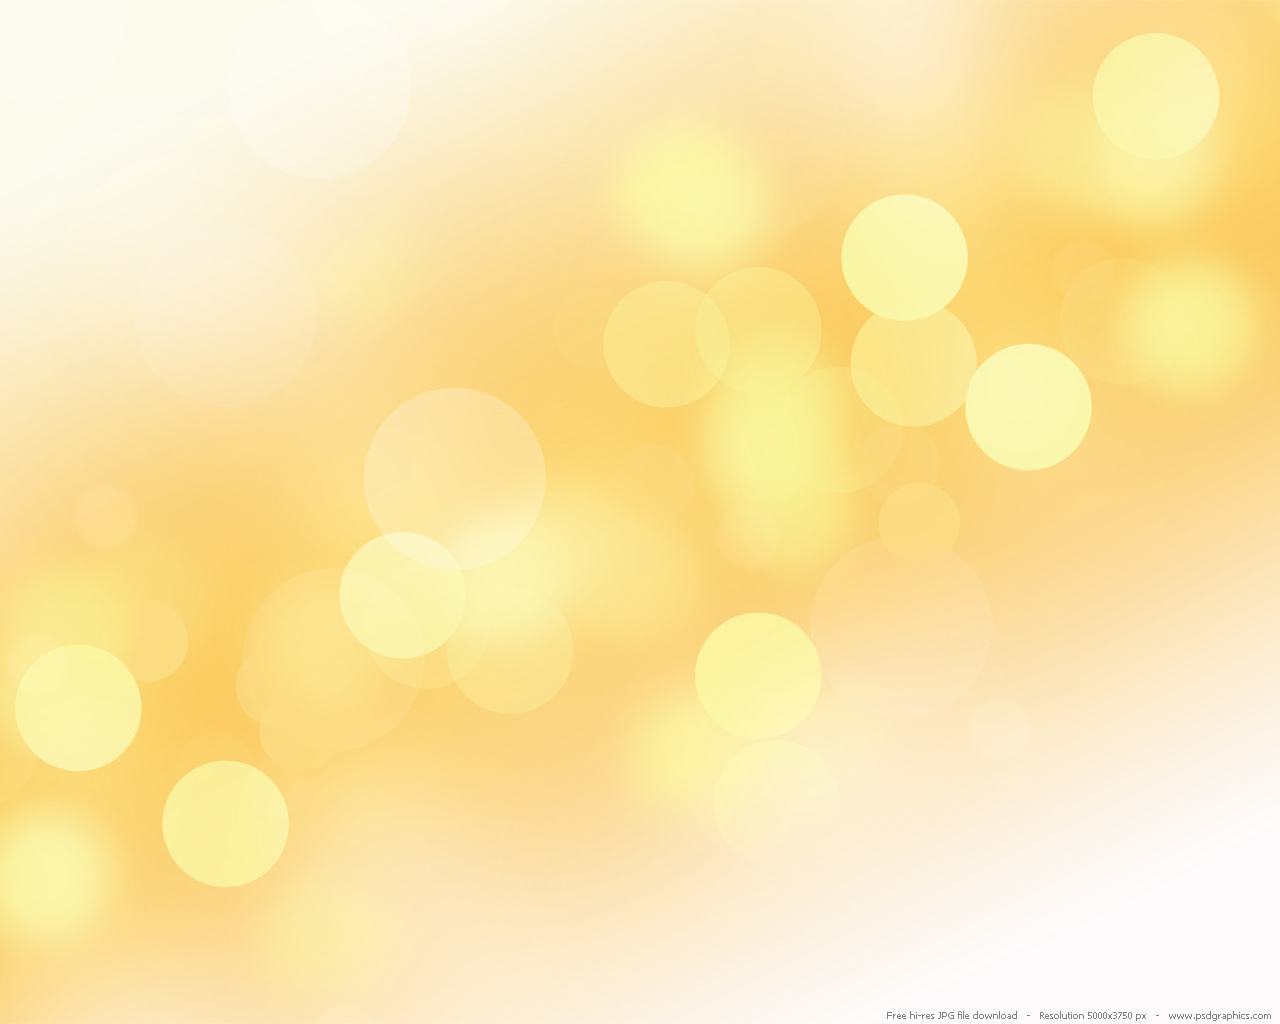 Soft yellow background